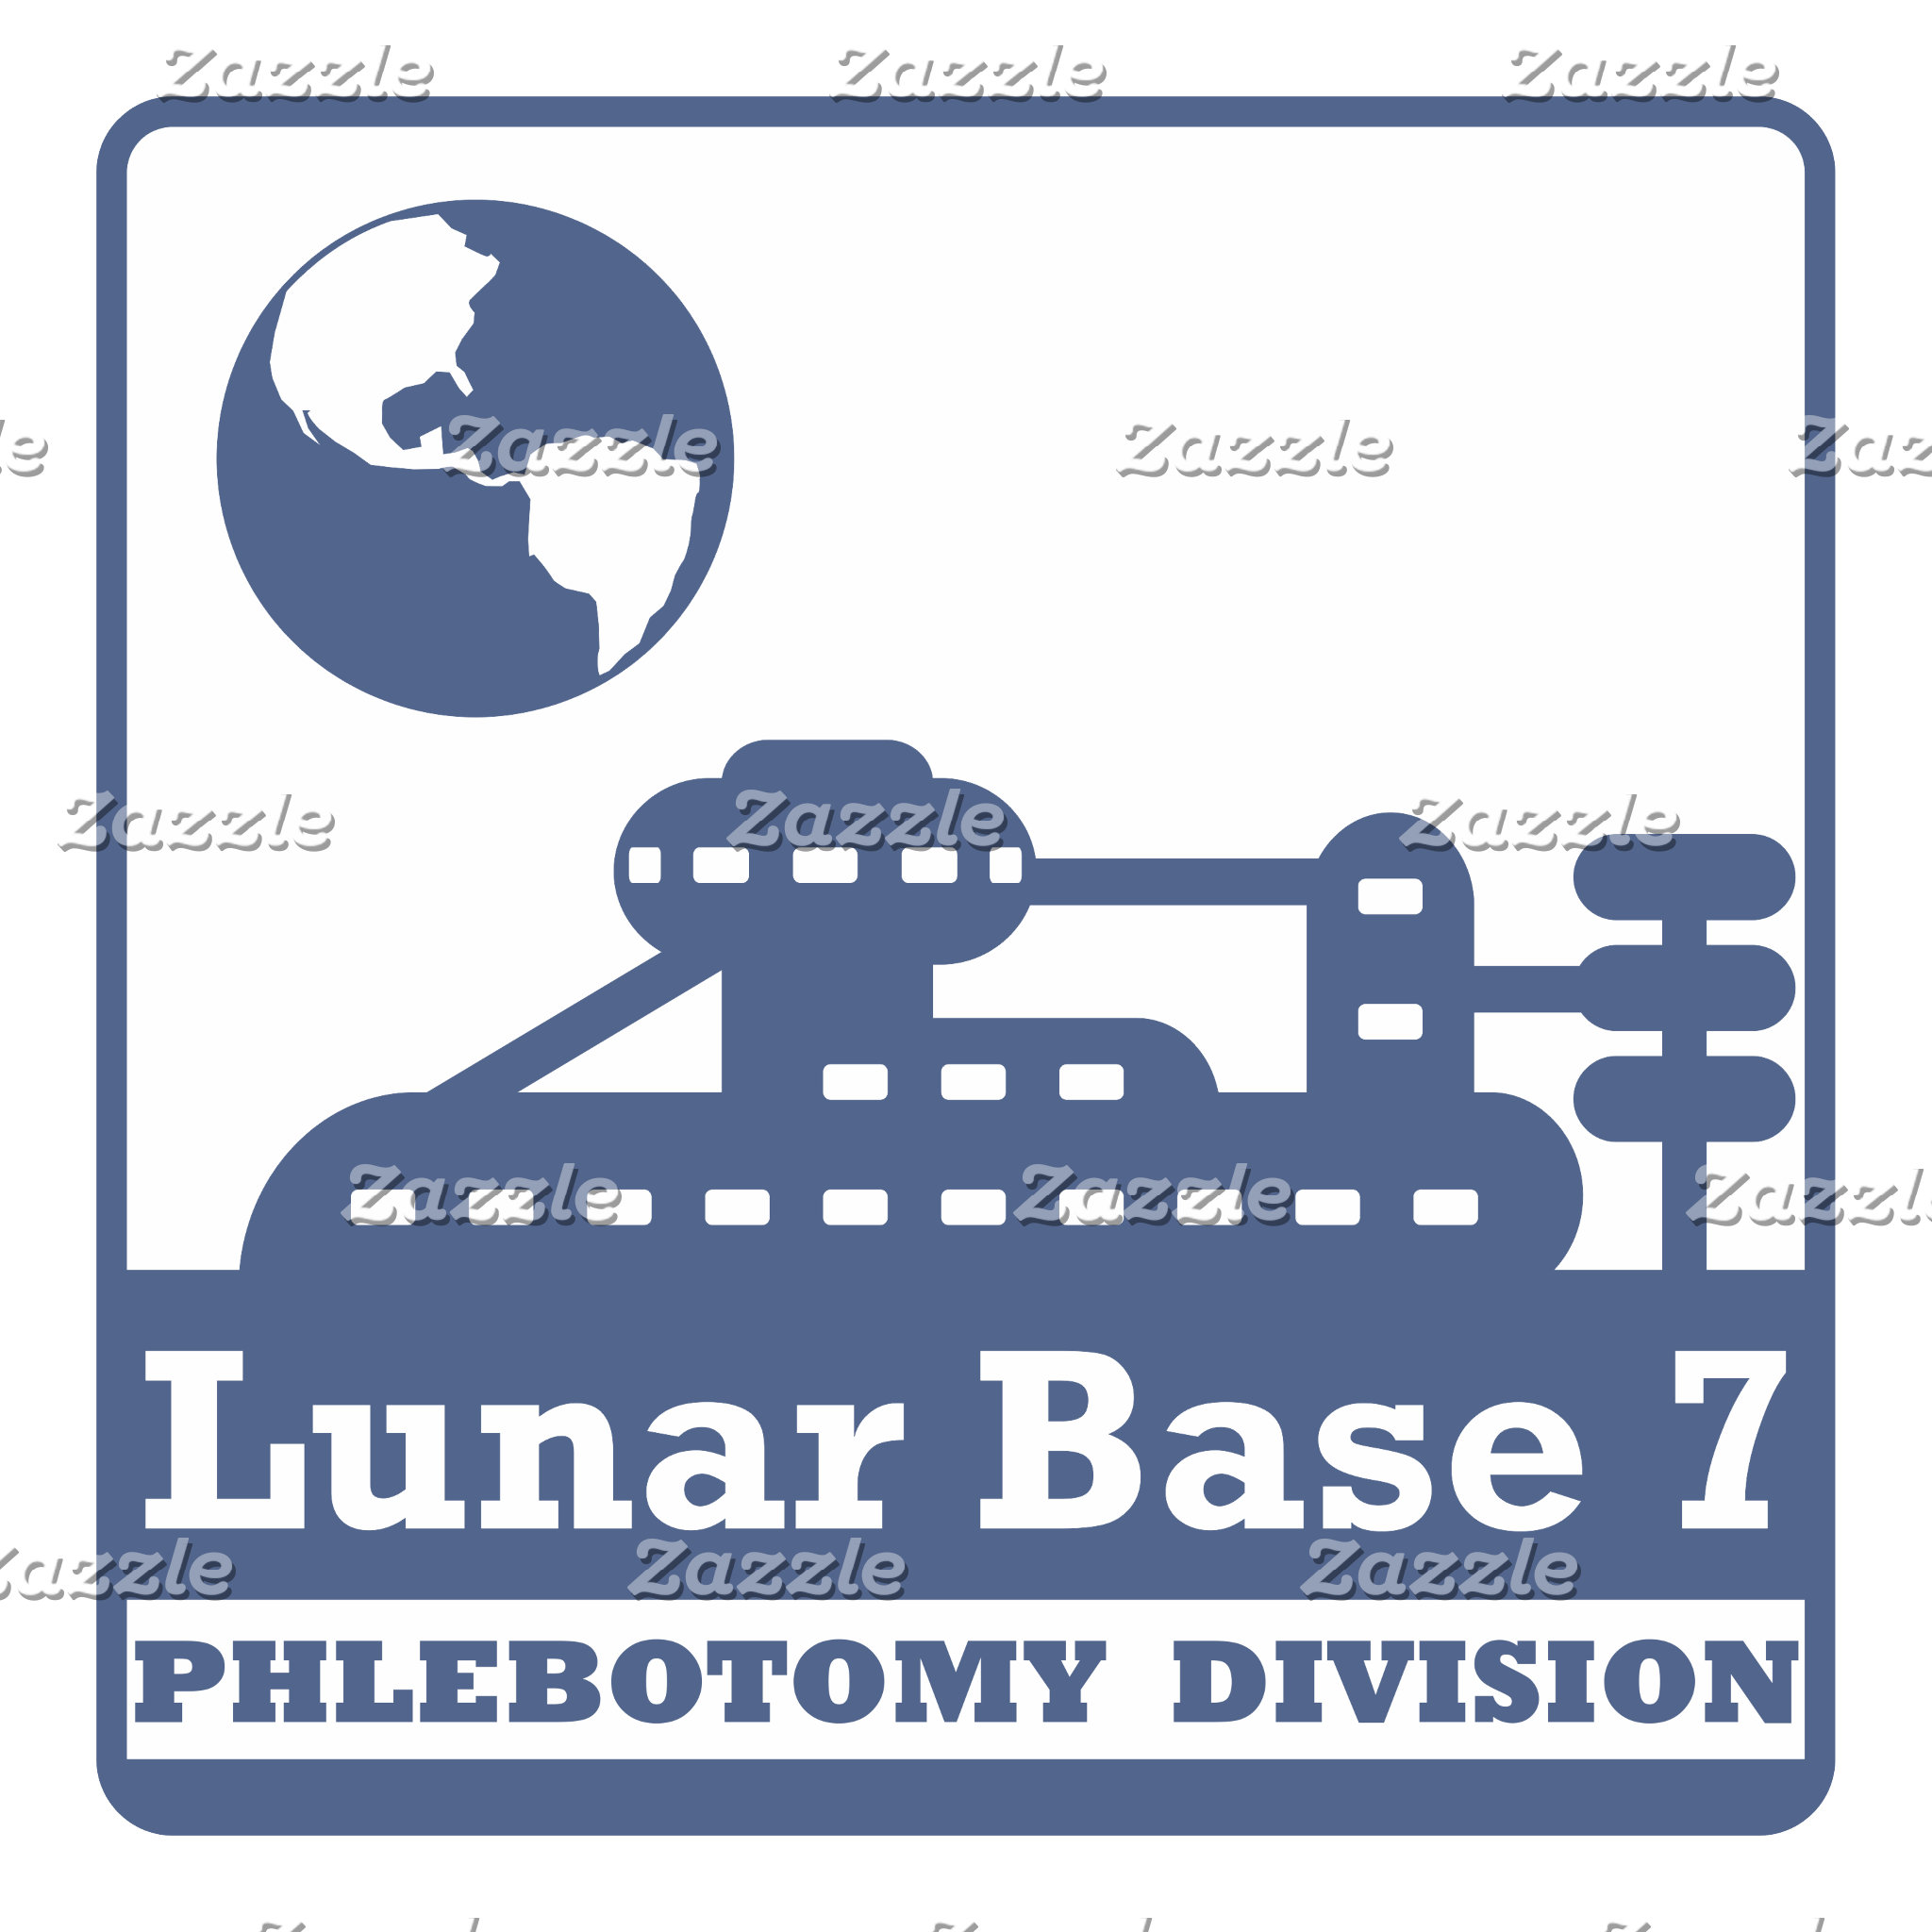 Phlebotomy / Lunar Base 7